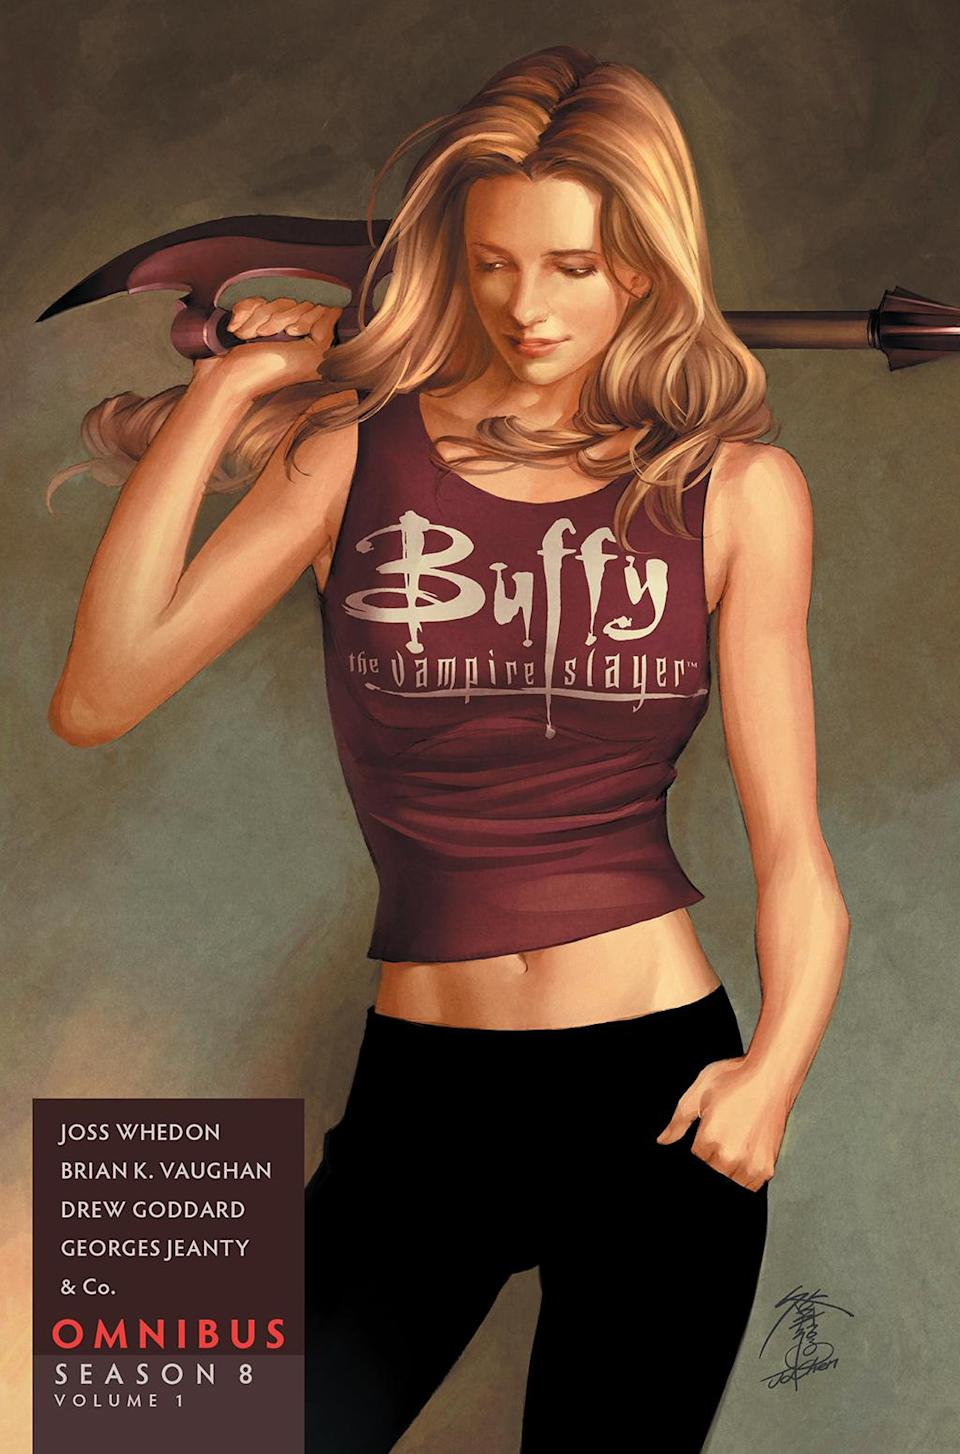 """<p>On Sept. 26, Dark Horse publishes the first of two volumes of """"Season 8,"""" the comic that became the official sequel to the show when it was released in 2007. This collection includes the first four arcs of the series along with one-shots and short stories written by Whedon, Brian K. Vaughan, Drew Goddard, and Jeph Loeb, with art by Georges Jeanty, as well as Karl Moline, Paul Lee, Cliff Richards, and more. Price: $24.99. Another collection to look forward to in September: Simon & Schuster's <em>Buffy the Vampire Slayer: The Watcher's Guide 20th Anniversary Edition</em>, which will combine the<span><span> content from Volumes 1–3 of the original <em>Watcher's Guides</em>, with exclusive new content including never-before-seen interviews with the cast and crew. </span></span>(Credit: Dark Horse) </p>"""